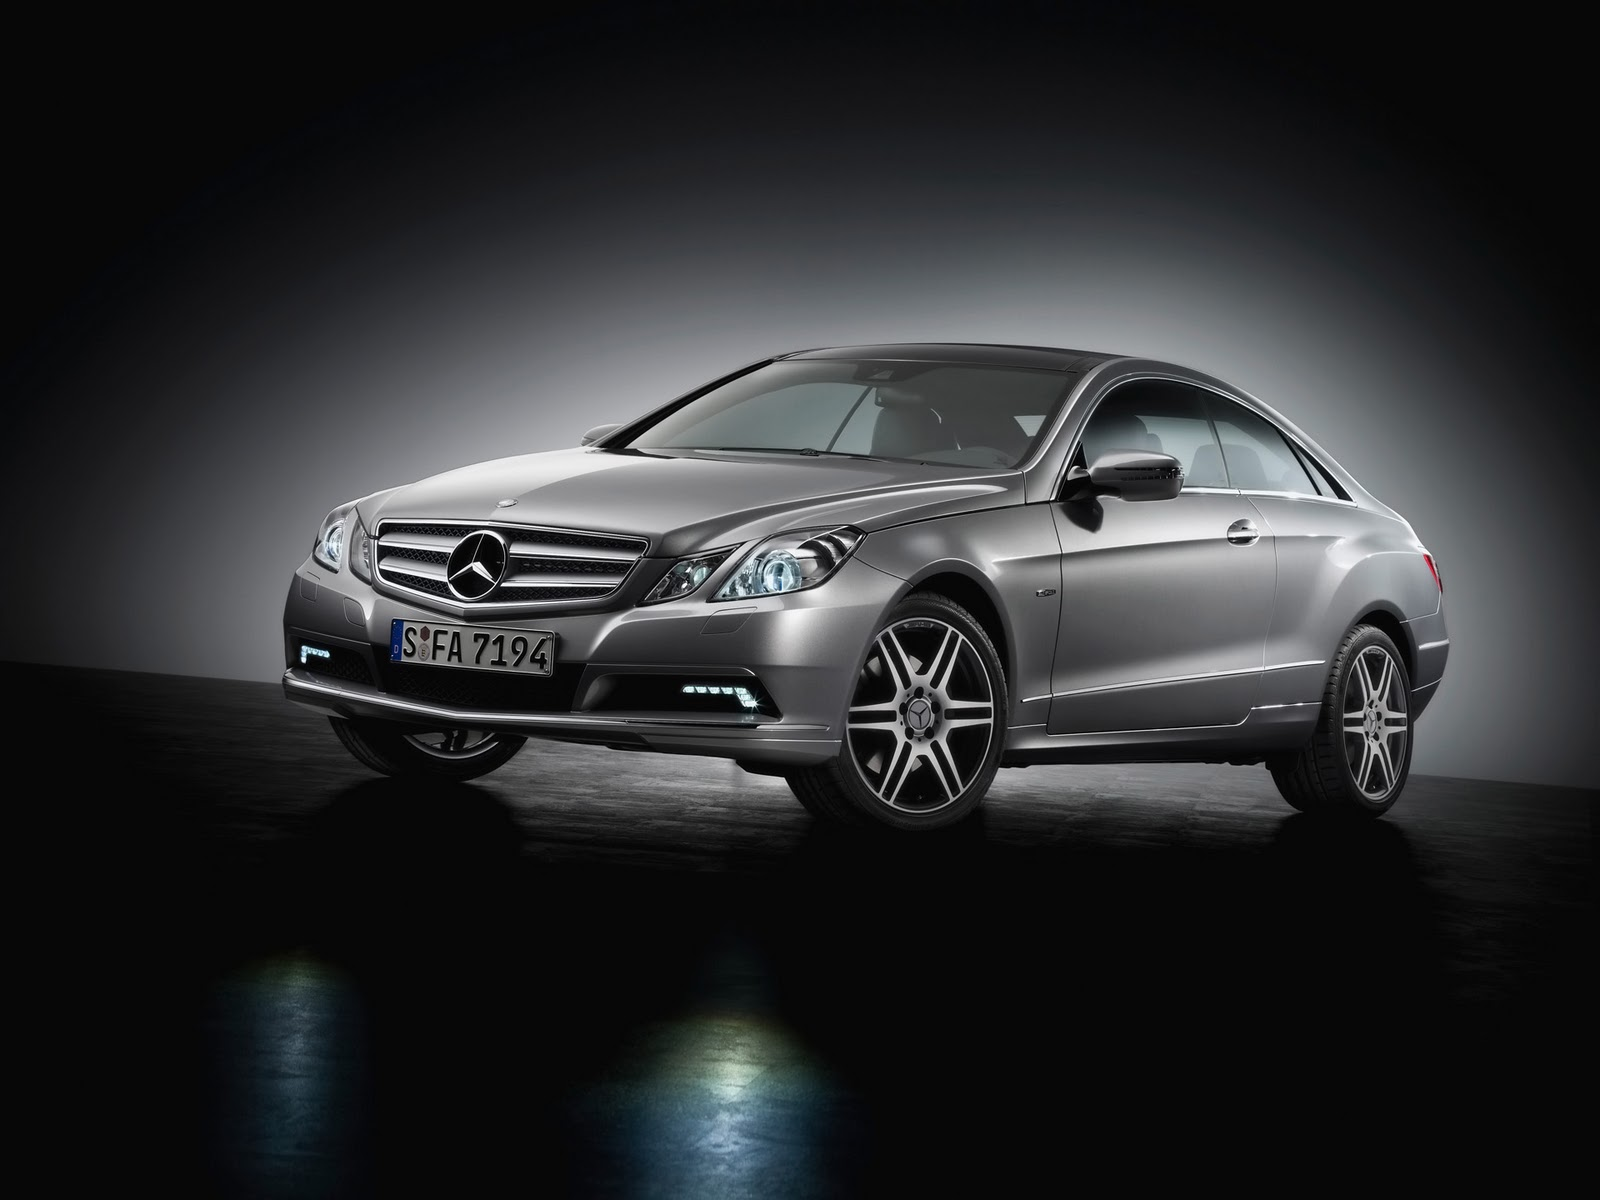 Mercedes benz wallpapers hd nice wallpapers for 2009 mercedes benz